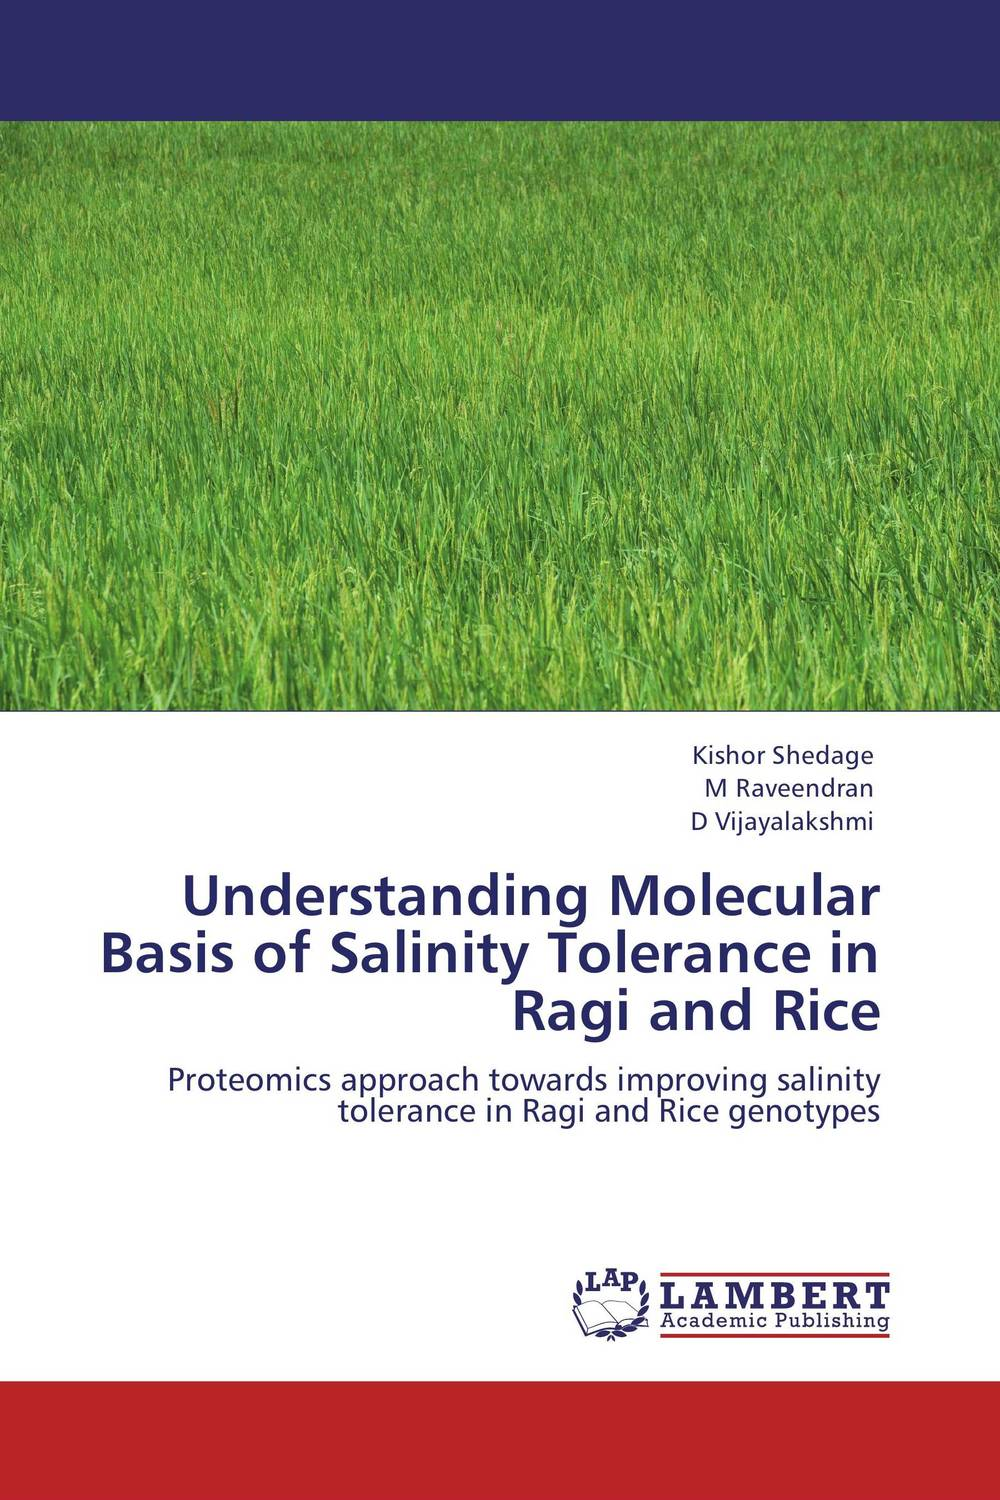 Understanding Molecular Basis of Salinity Tolerance in Ragi and Rice ranju bansal rakesh yadav and gulshan kumar asthma molecular basis and treatment approaches